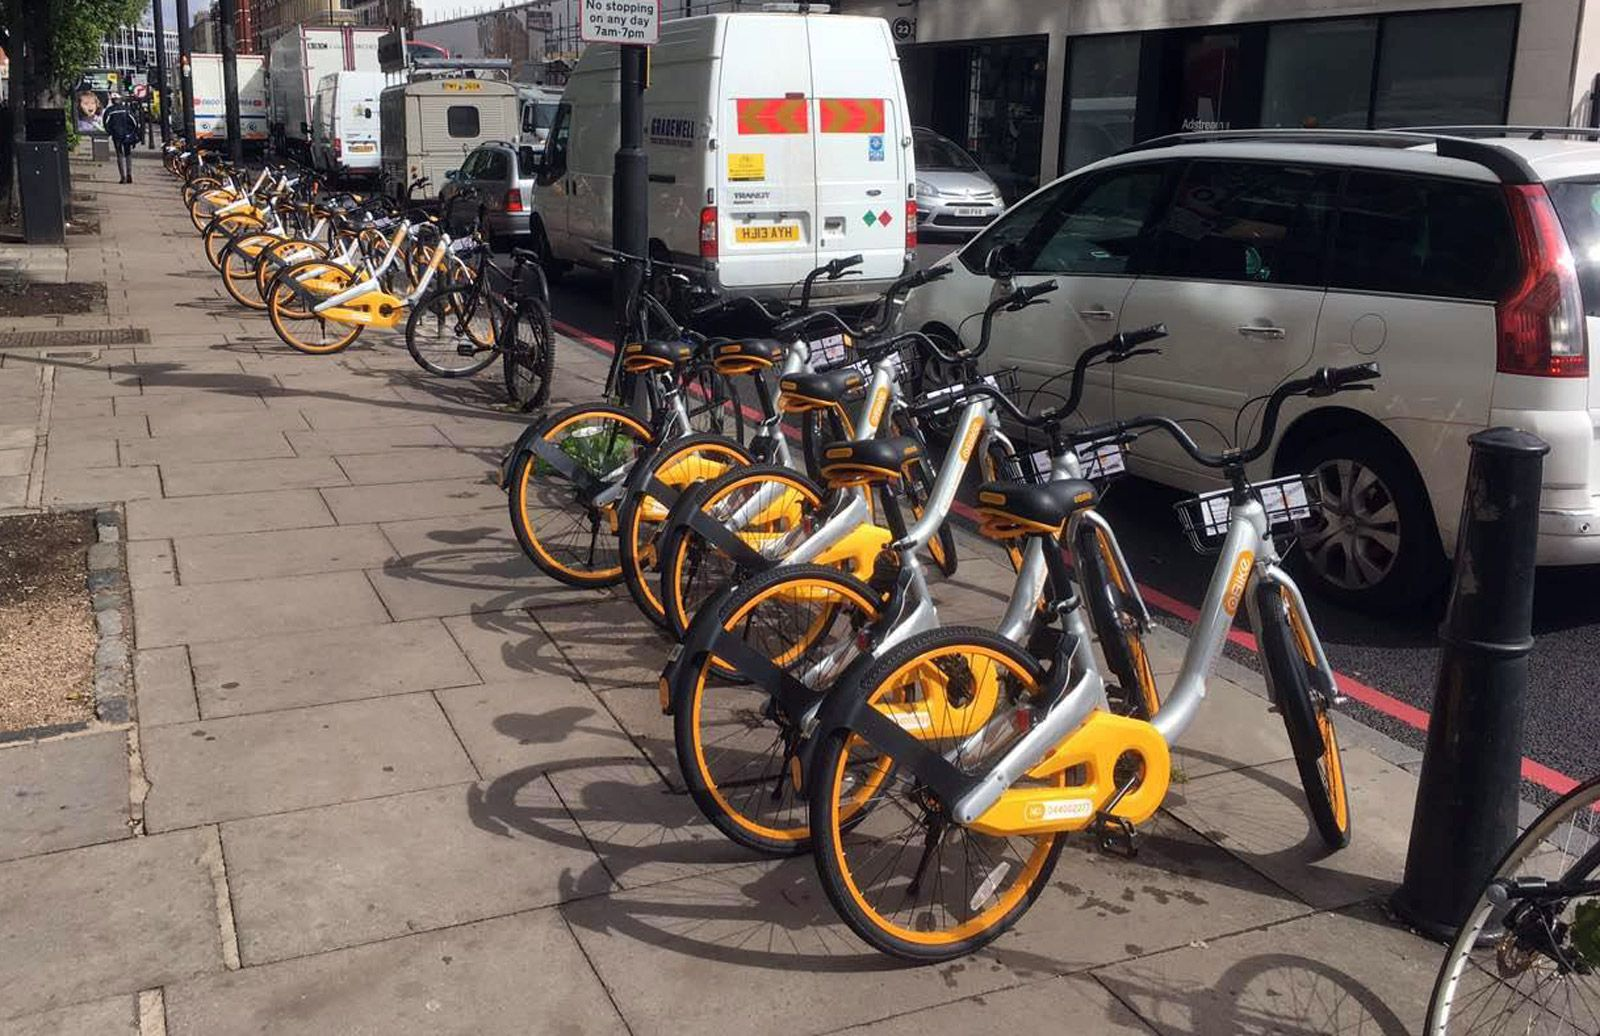 oBike arrives in London with its dockless take on Boris